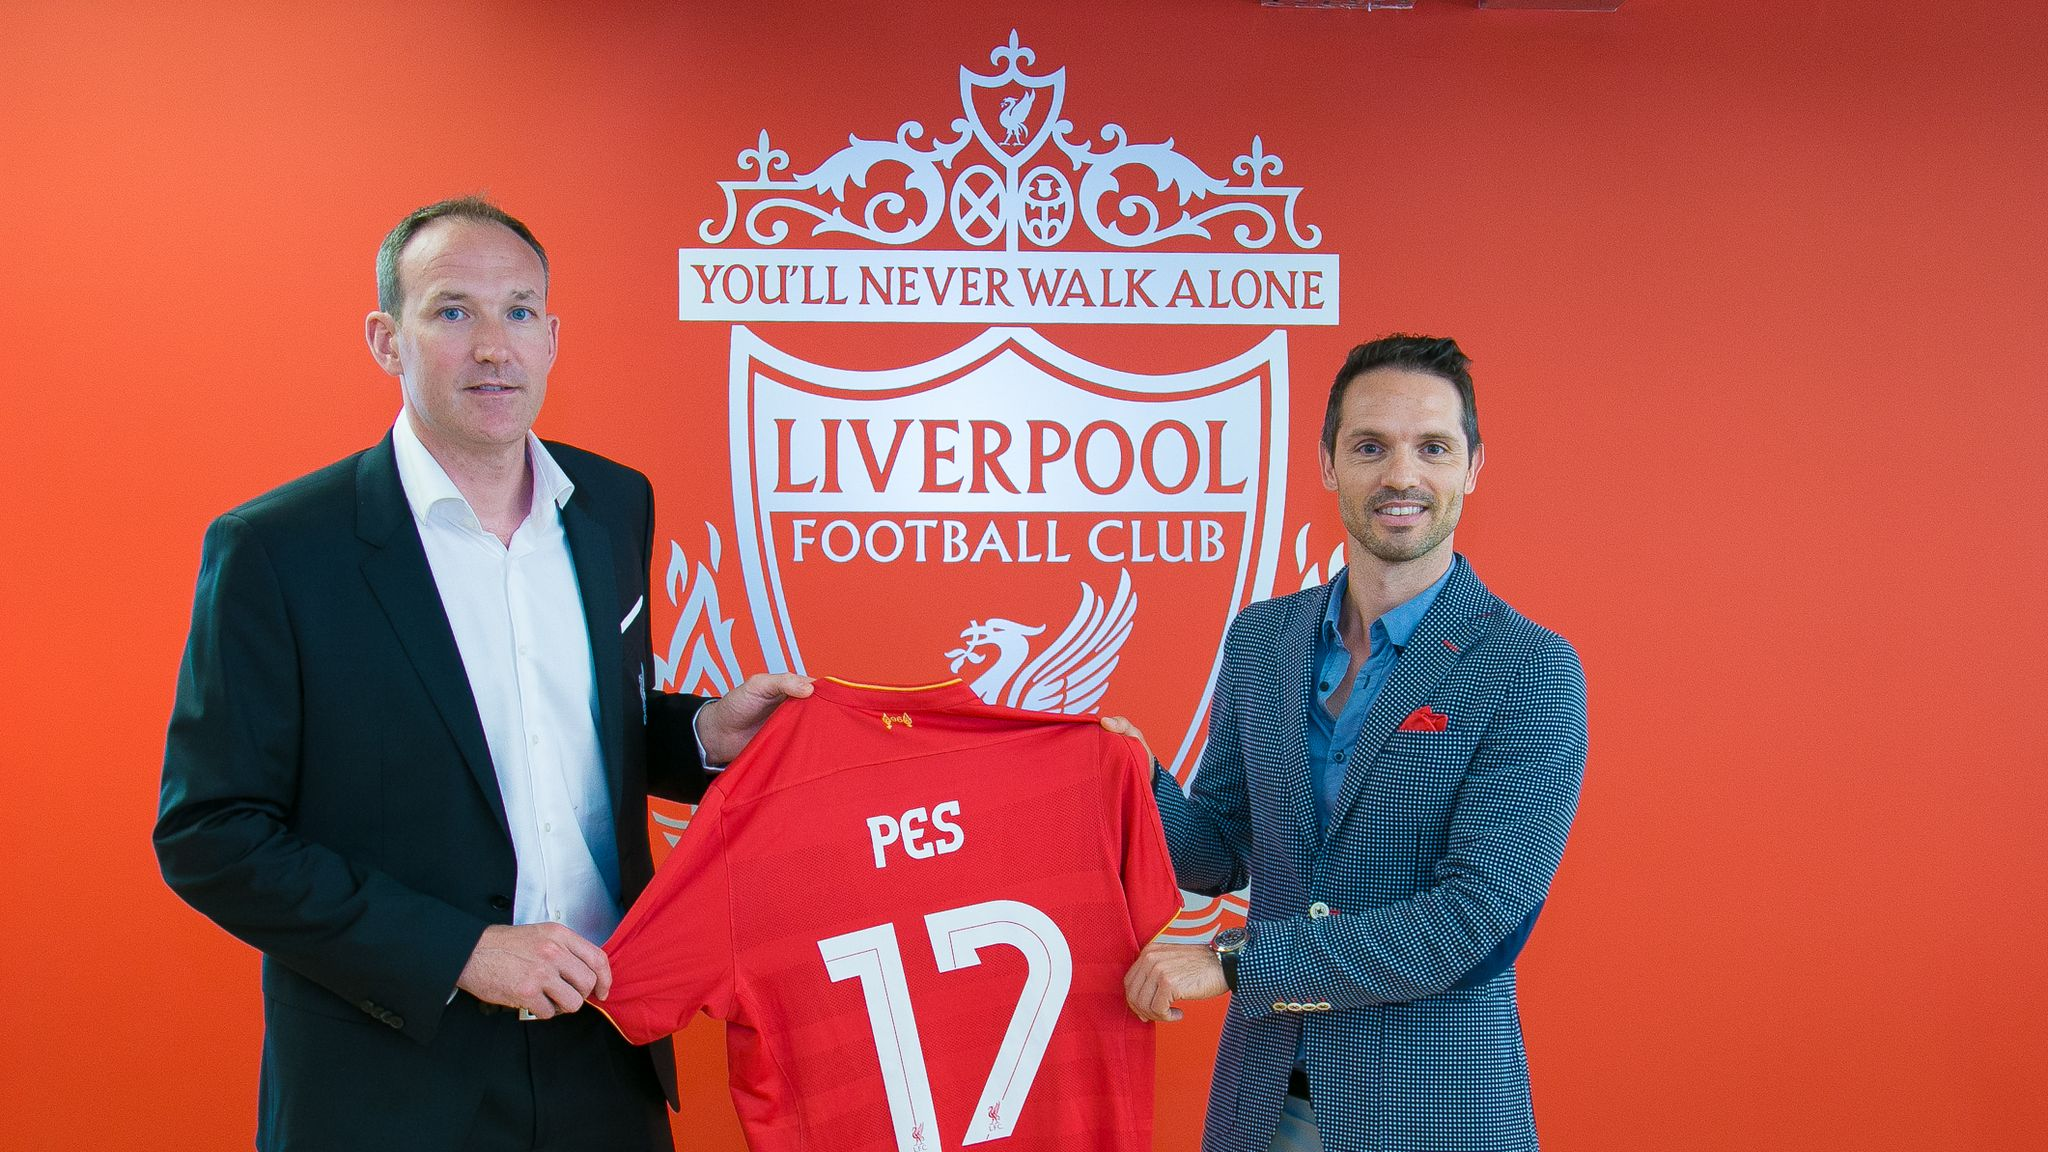 Liverpool sign three-year deal with Pro Evolution Soccer makers